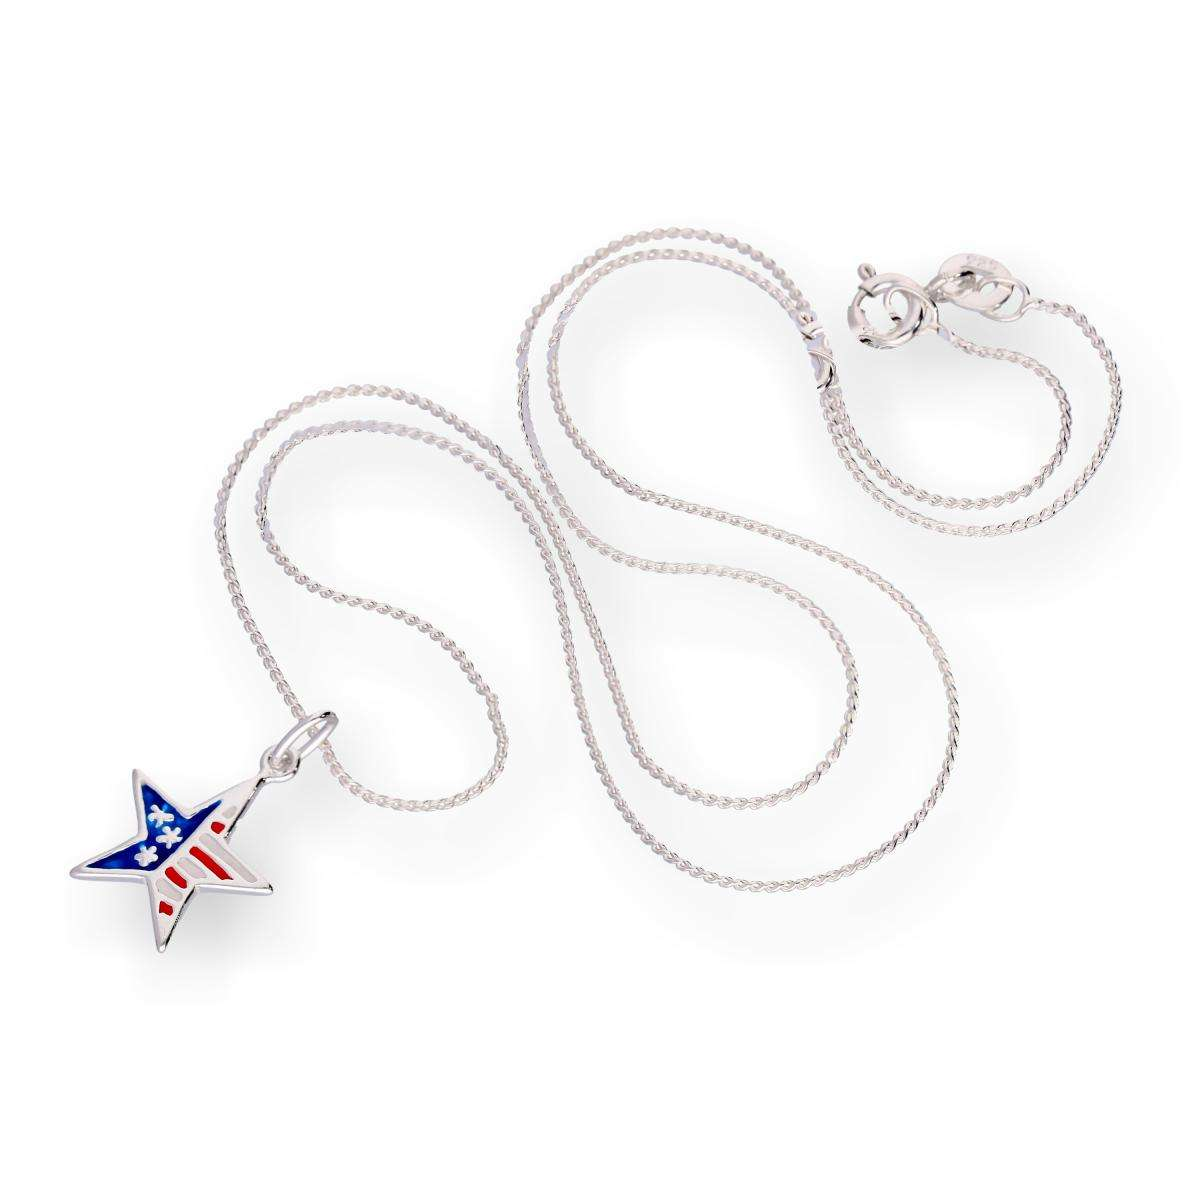 Alterative image for Sterling Silver & Enamel American Flag Star Pendant Necklace 16 - 22 Inches